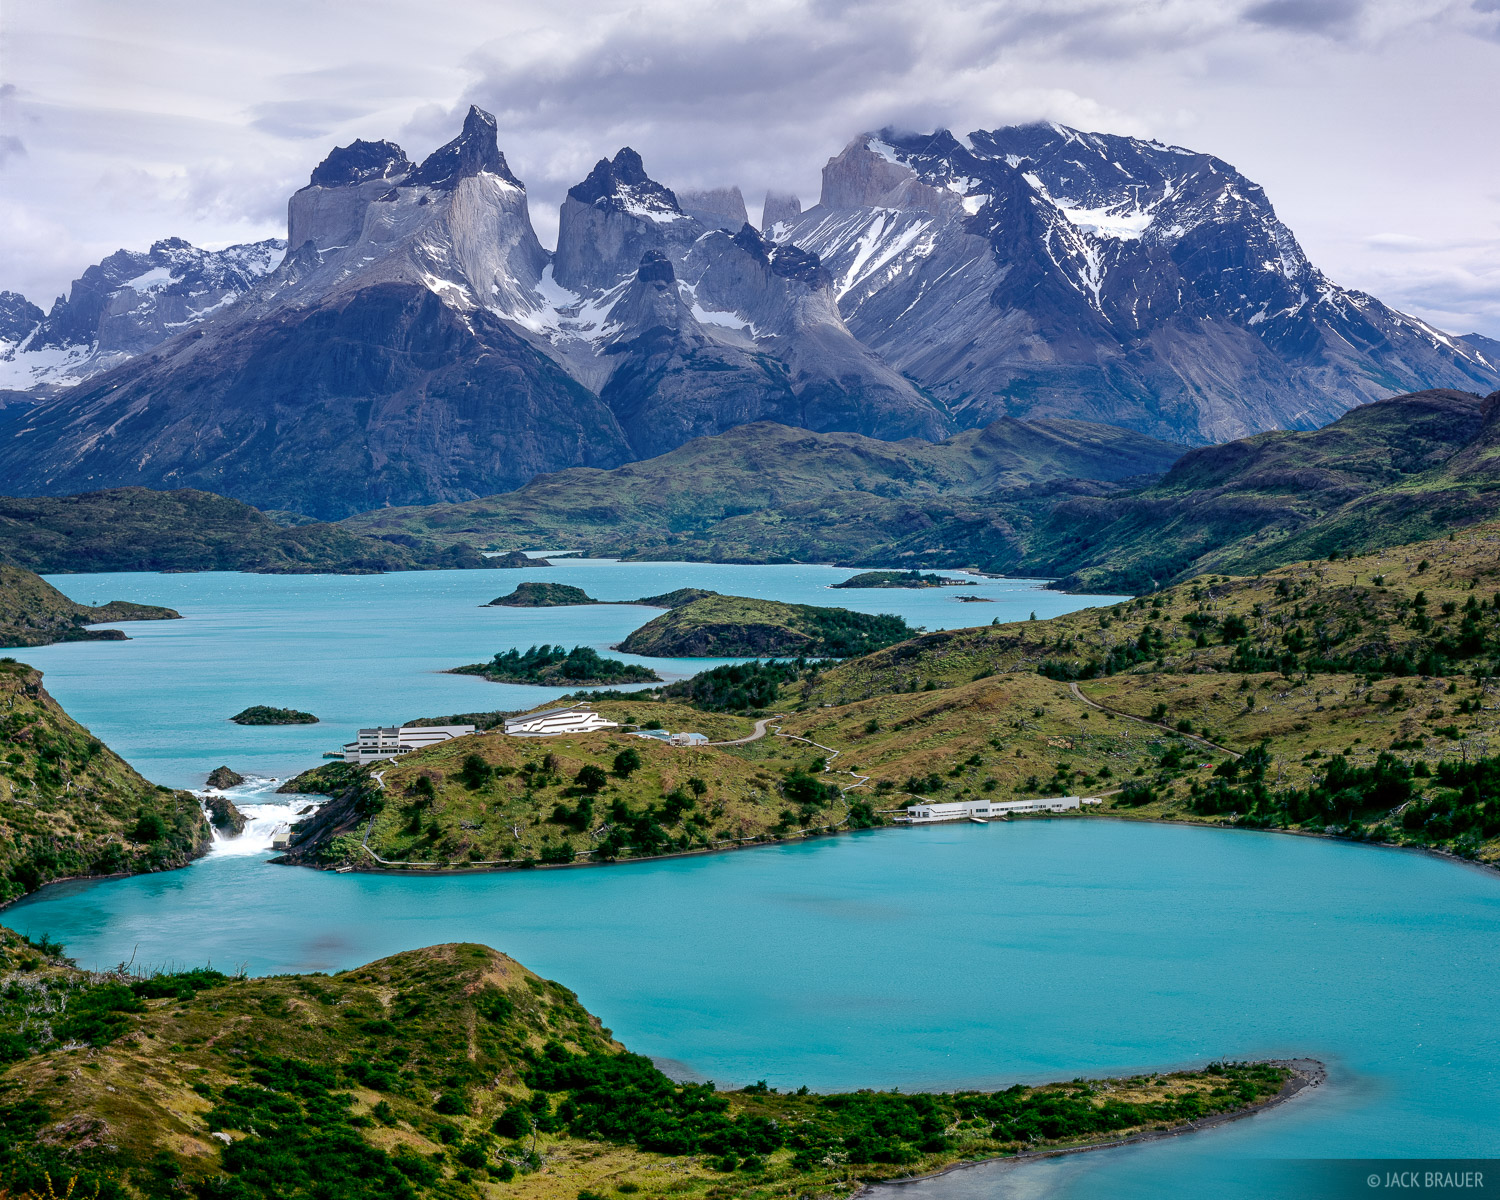 Glass Wallpaper Hd Lago Pehoe Torres Del Paine Chile Mountain